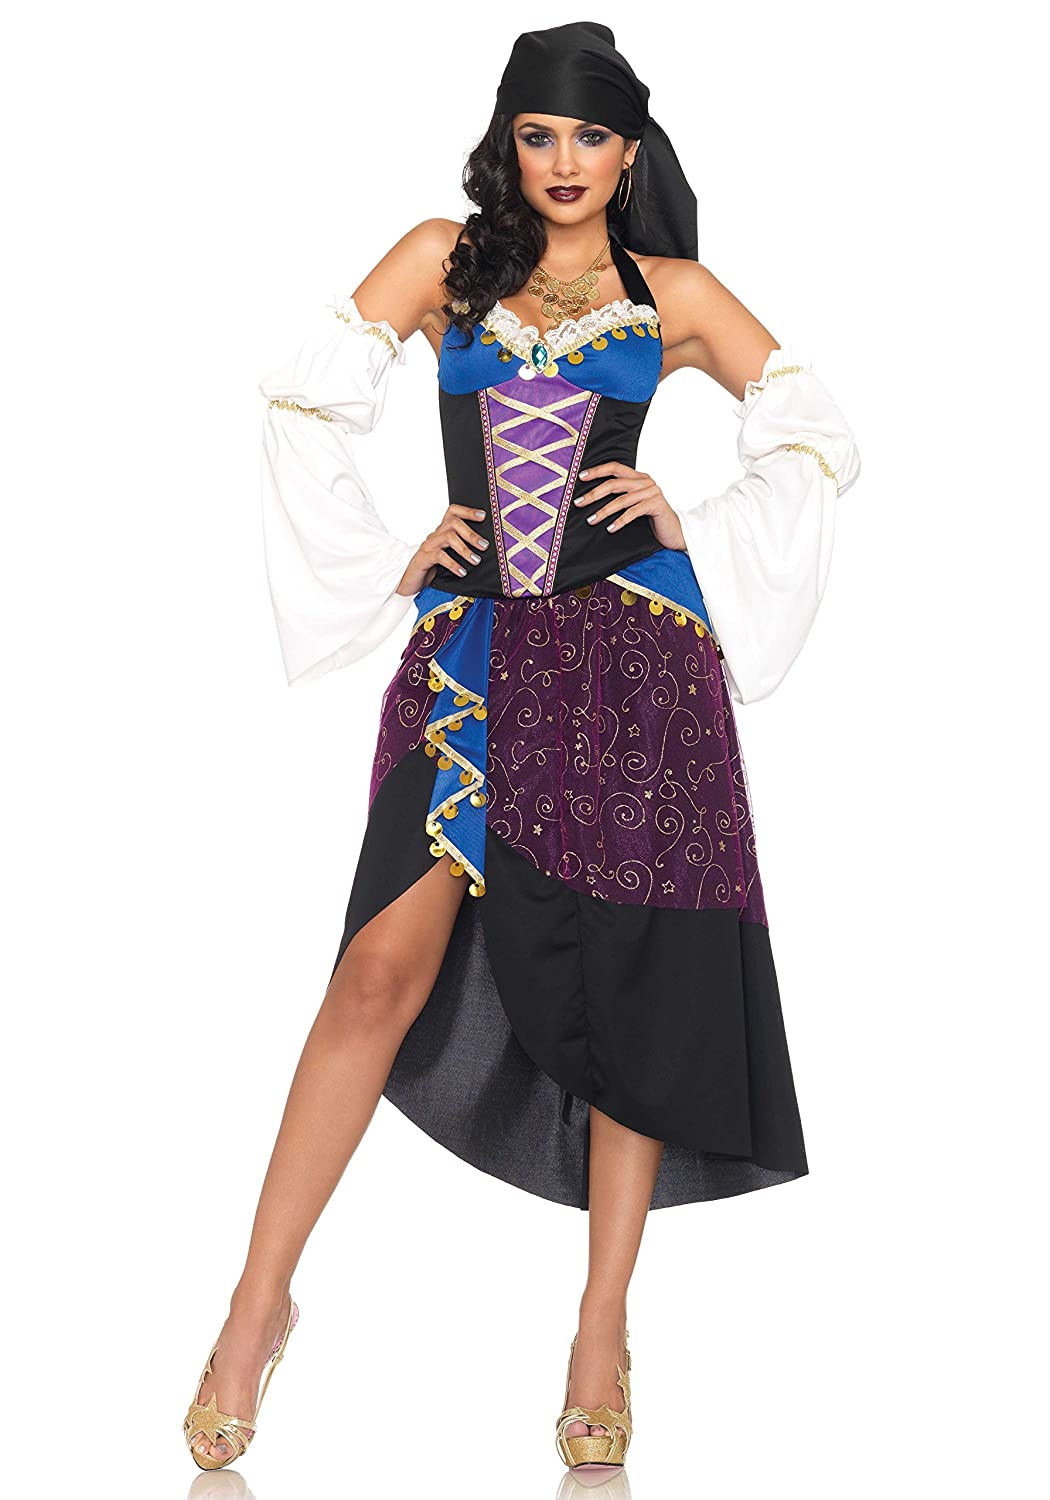 Life Is Good Leg Avenue Ladies 5 Piece Tared Card Gypsy Costume Outfit Size 1012